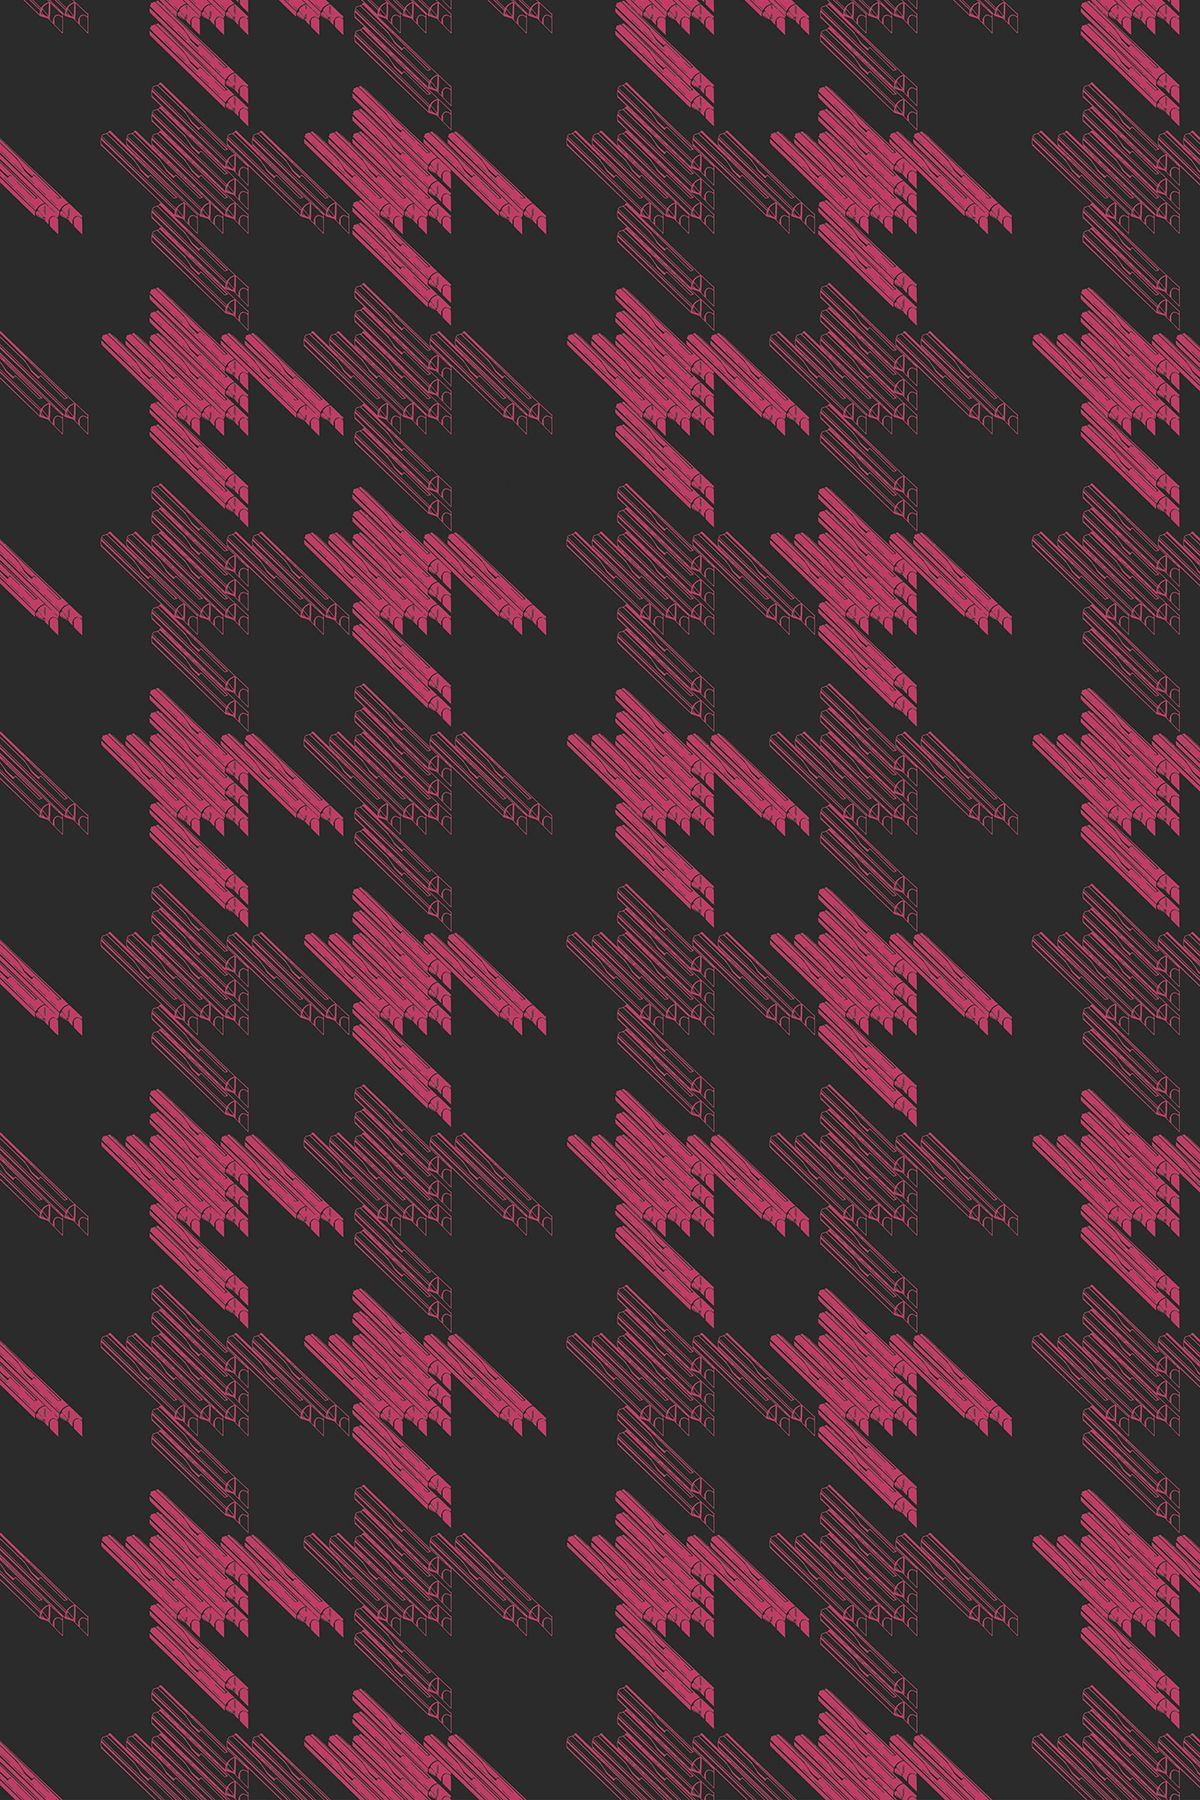 Moody Monday Black Keys Wallpaper Magenta On Black The